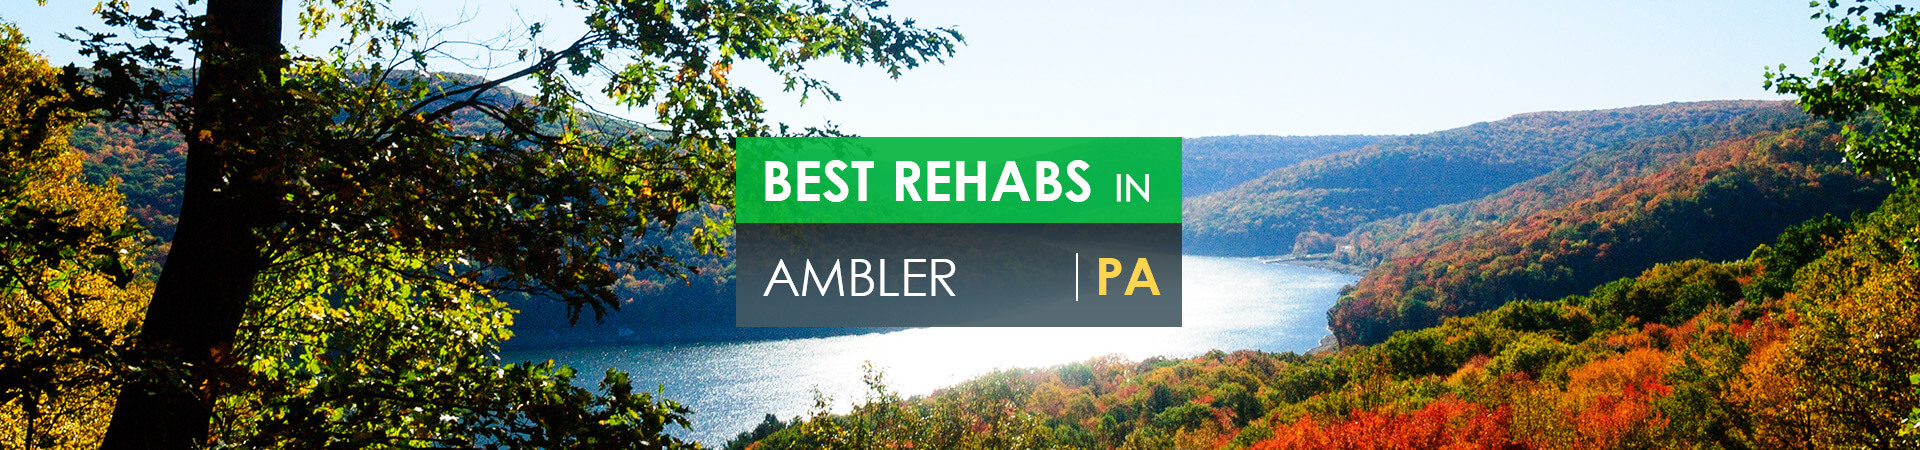 Best rehabs in Ambler, PA